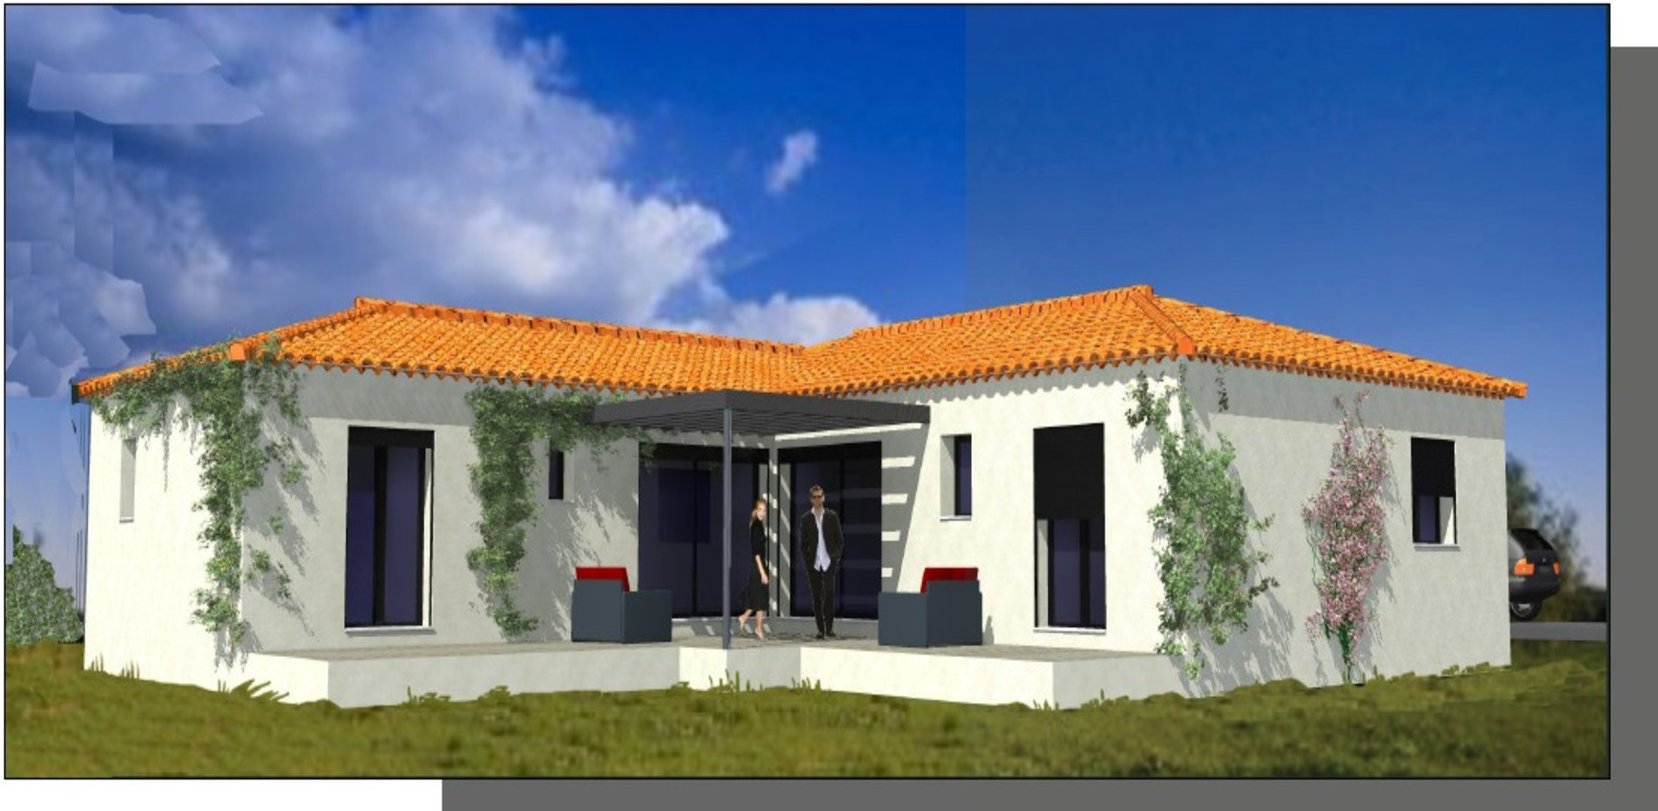 Villa maison Lattes Cosntruction Pérols Montpellier Hérault Béziers Constructeur Plans Etage Plain Pied Architecture Prestations RT 2012